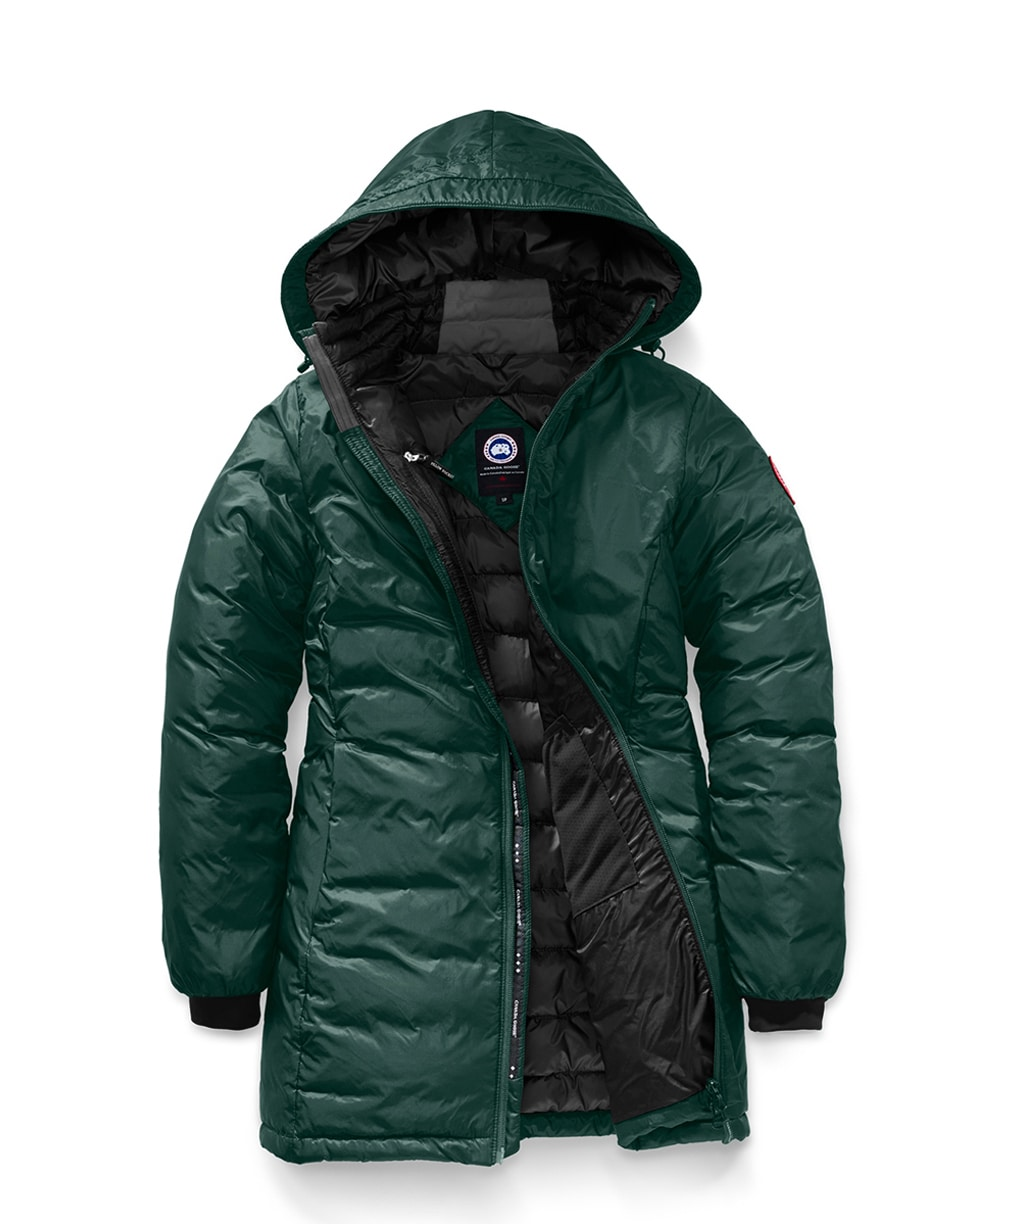 CAMP HOODED JACKET FUSION FIT